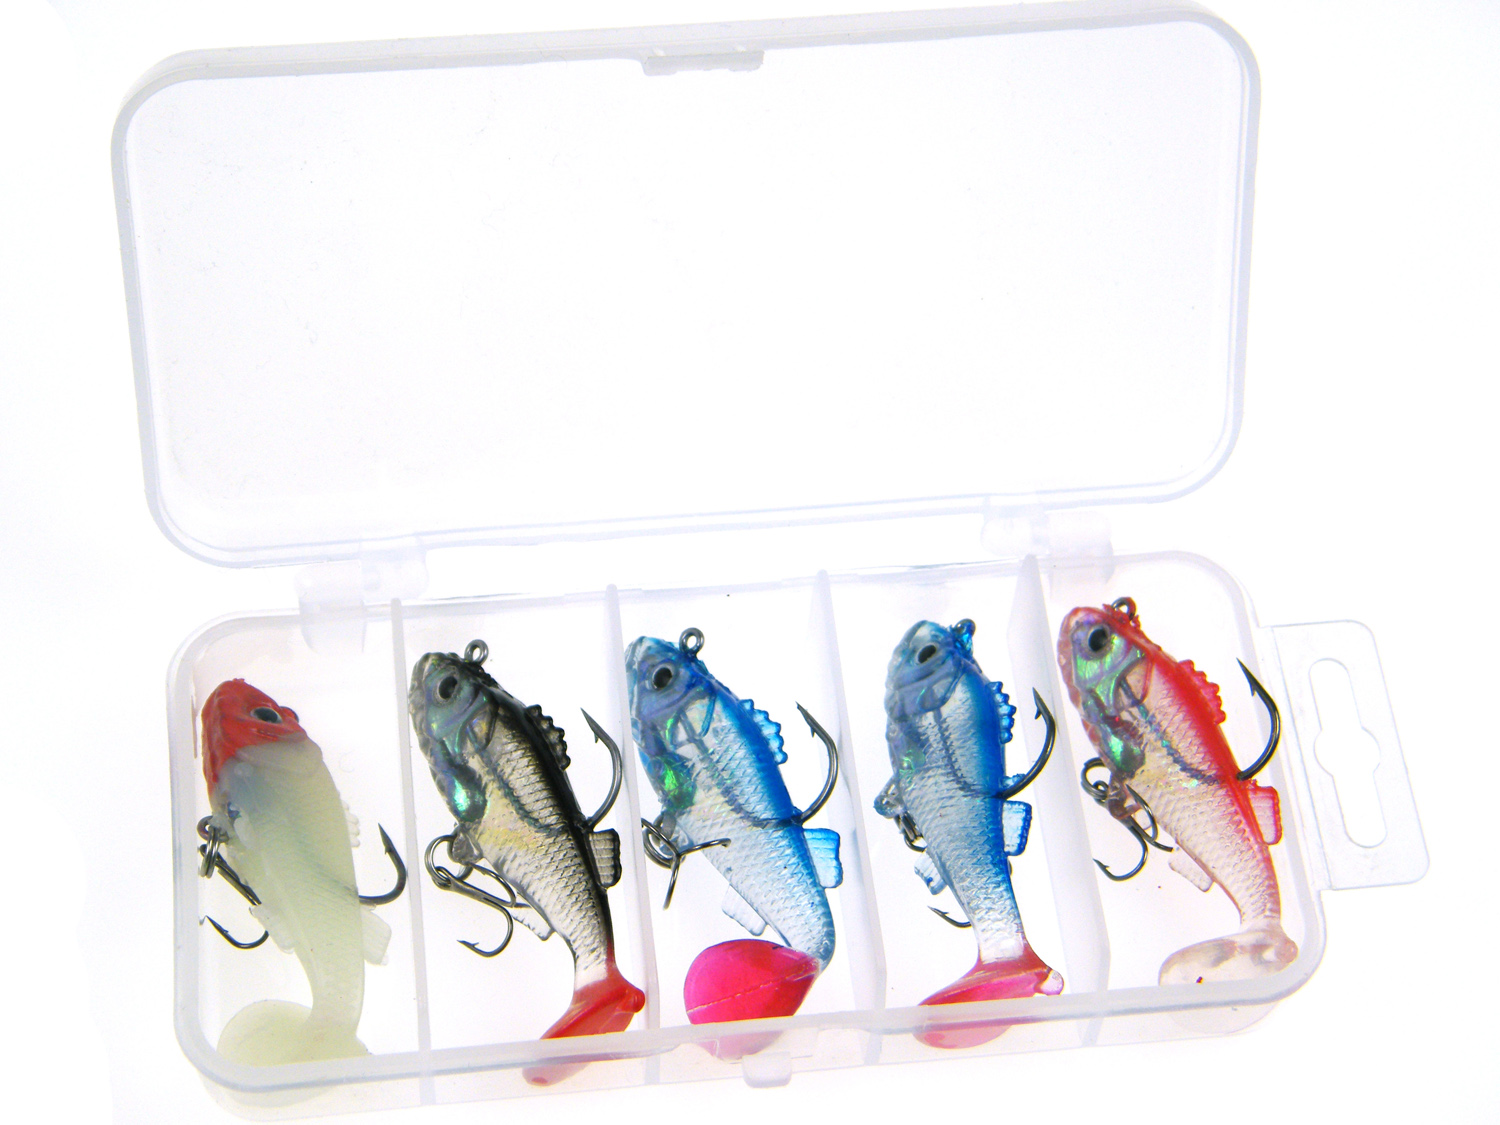 5 Pcs Pack Mix Color 6cm 8.5g Kit Fishing Lead Rigged Silicone Jig Artificial Soft Lure Baits Kit Set by